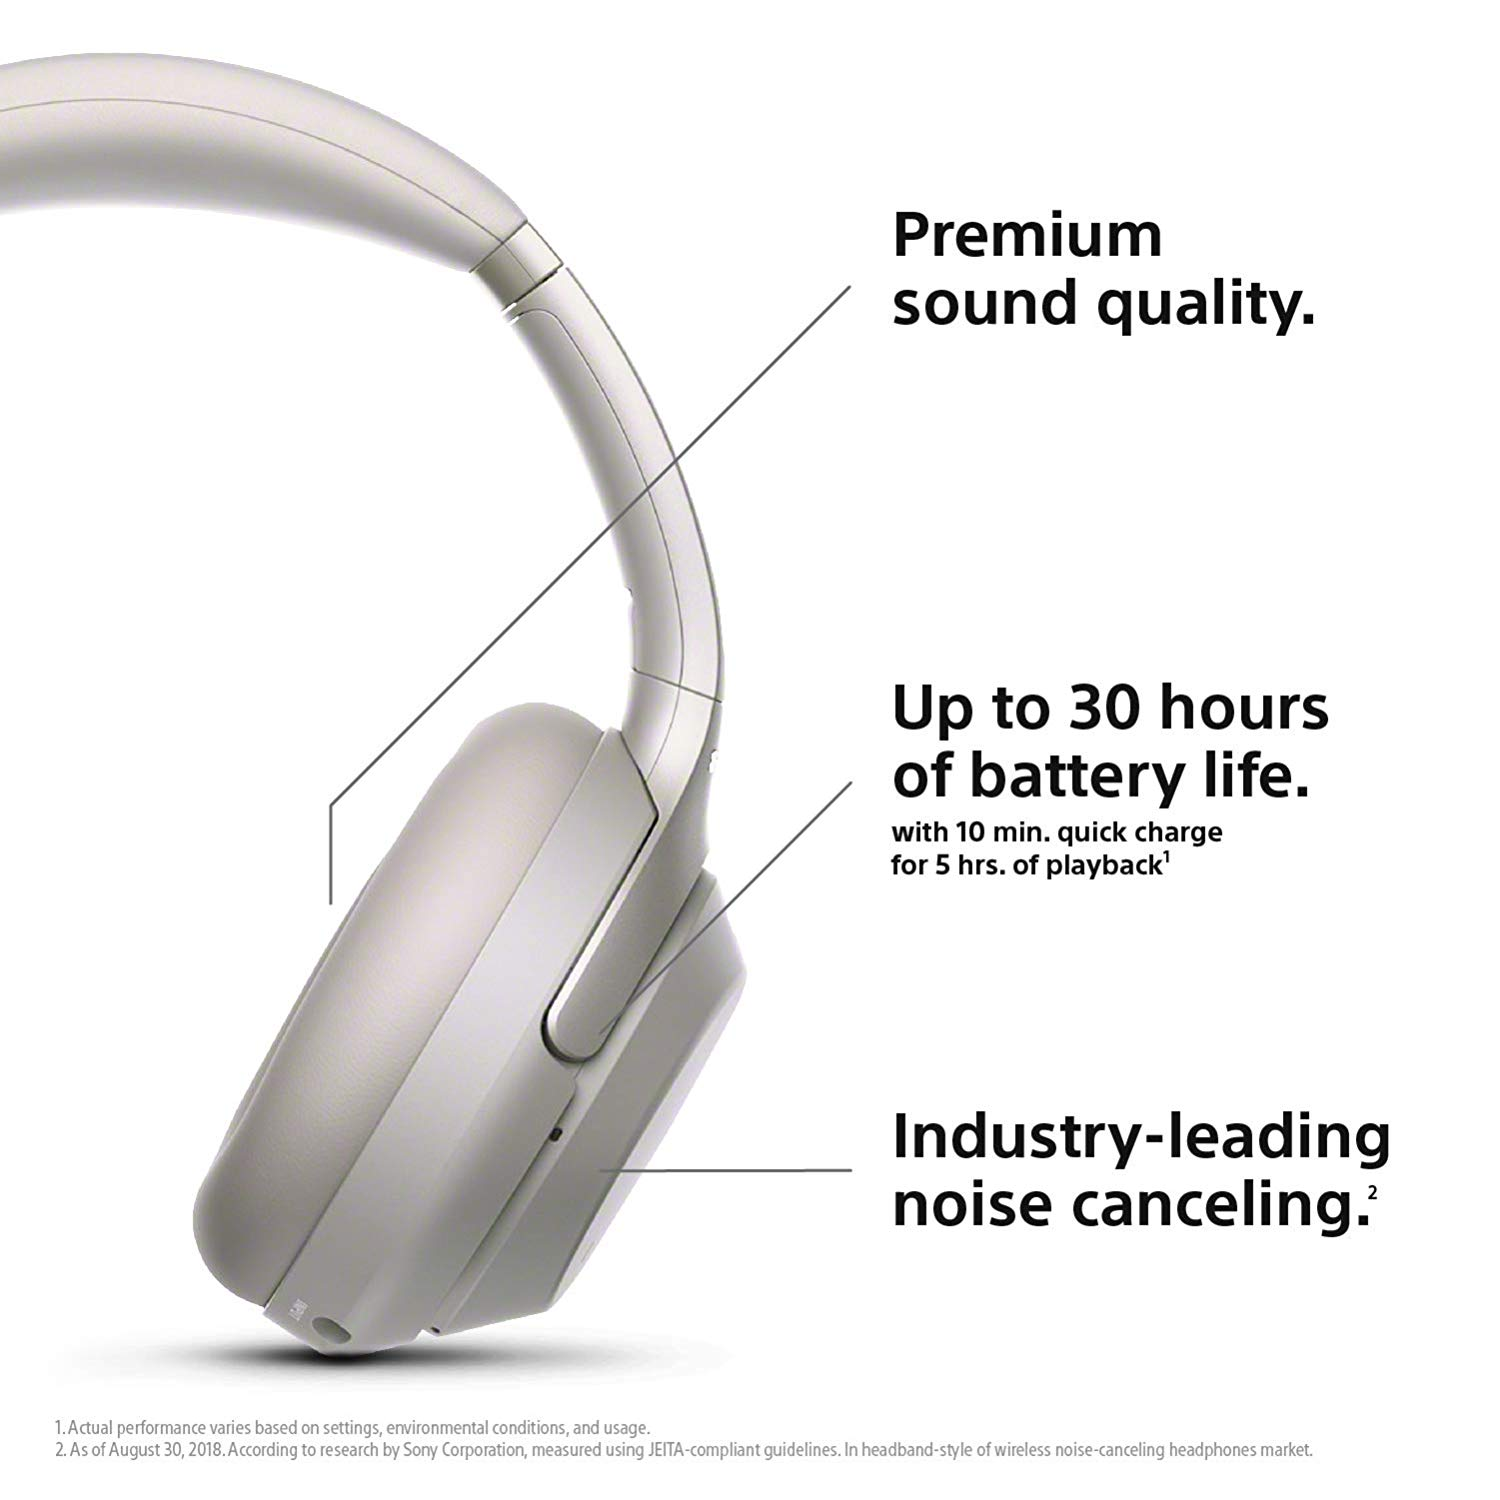 Sony Wh1000xm3 Wireless Industry Leading Noise Canceling Over Ear Headphones Xb950n1 Extra Bass